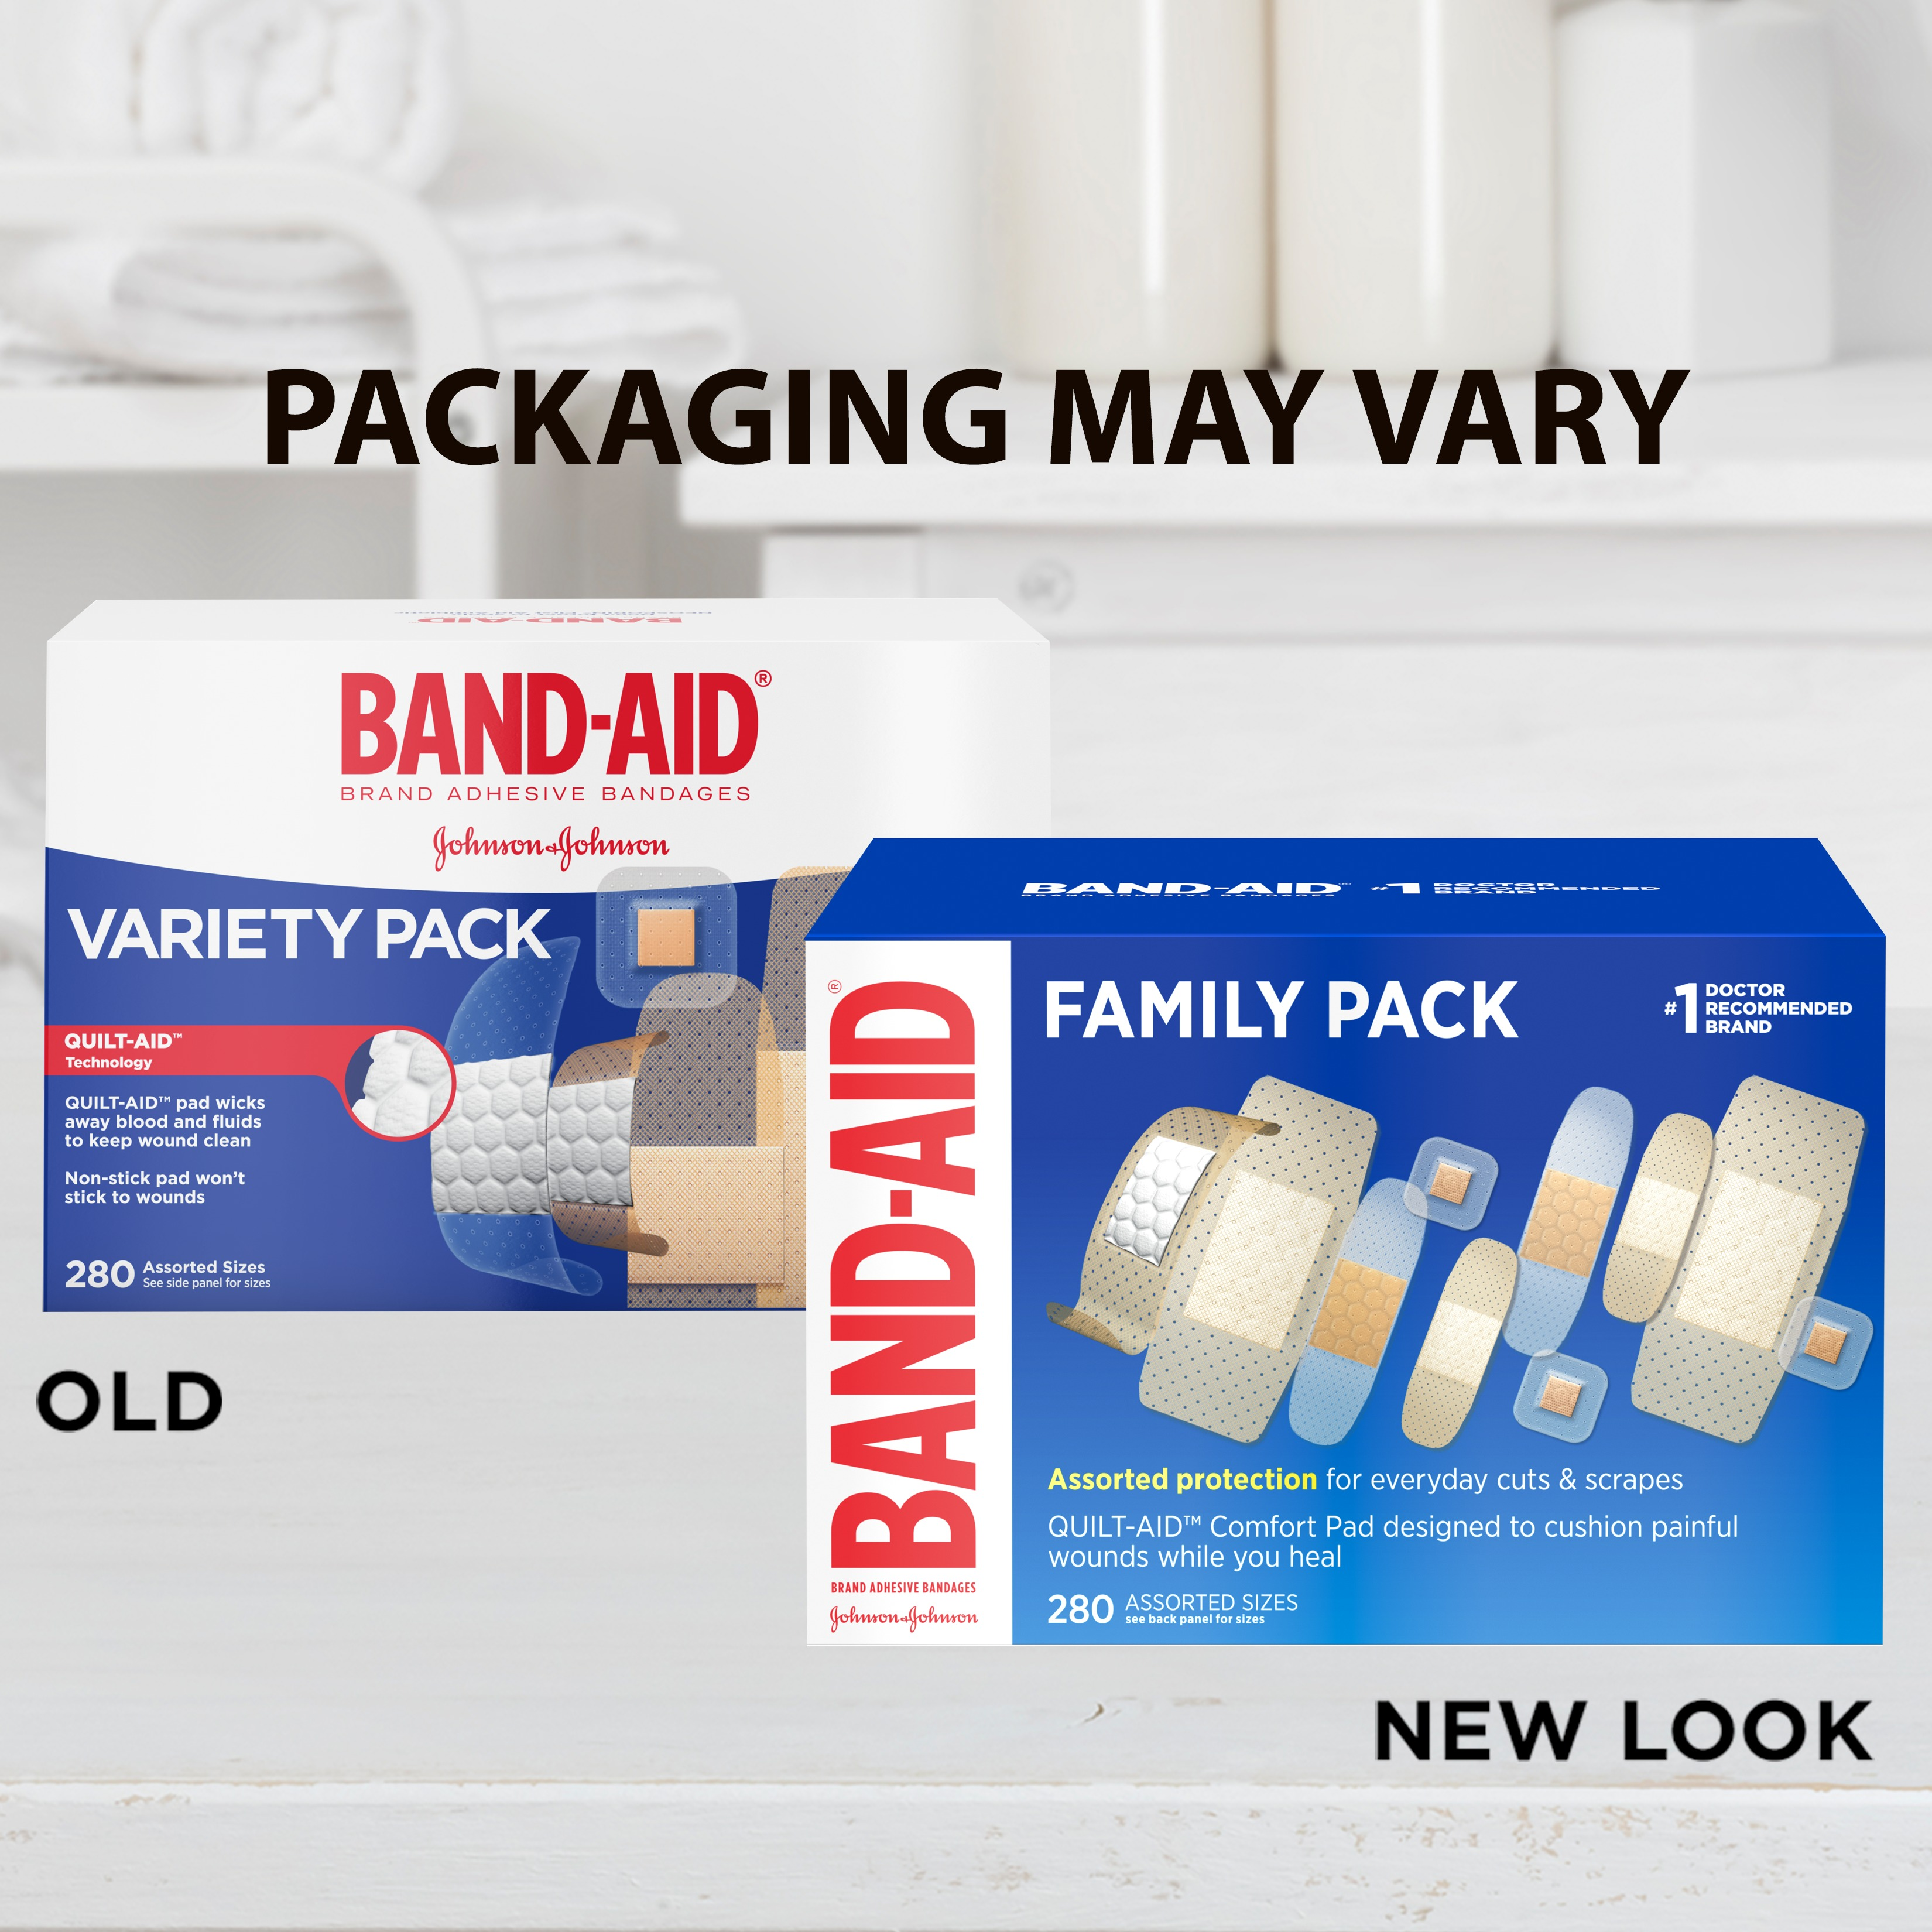 Band-Aid Brand Adhesive Bandage Family Variety Pack, Assorted Sizes, 280 ct